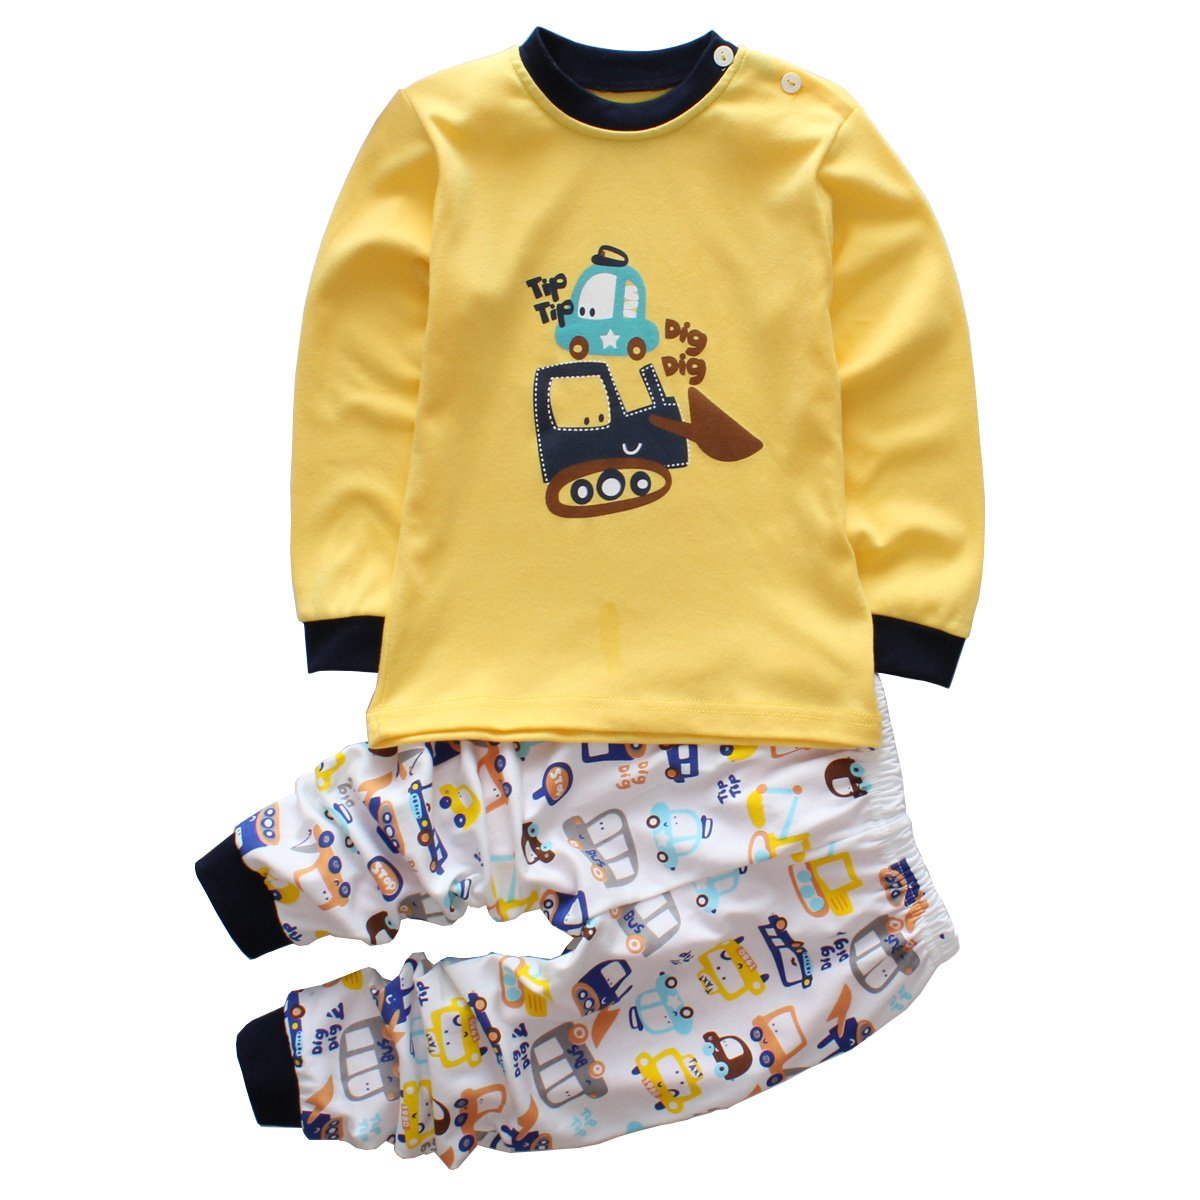 15538da08 Toddler Boy Clothes Sets Baby Outfits Infant Pajamas Long Sleeve ...